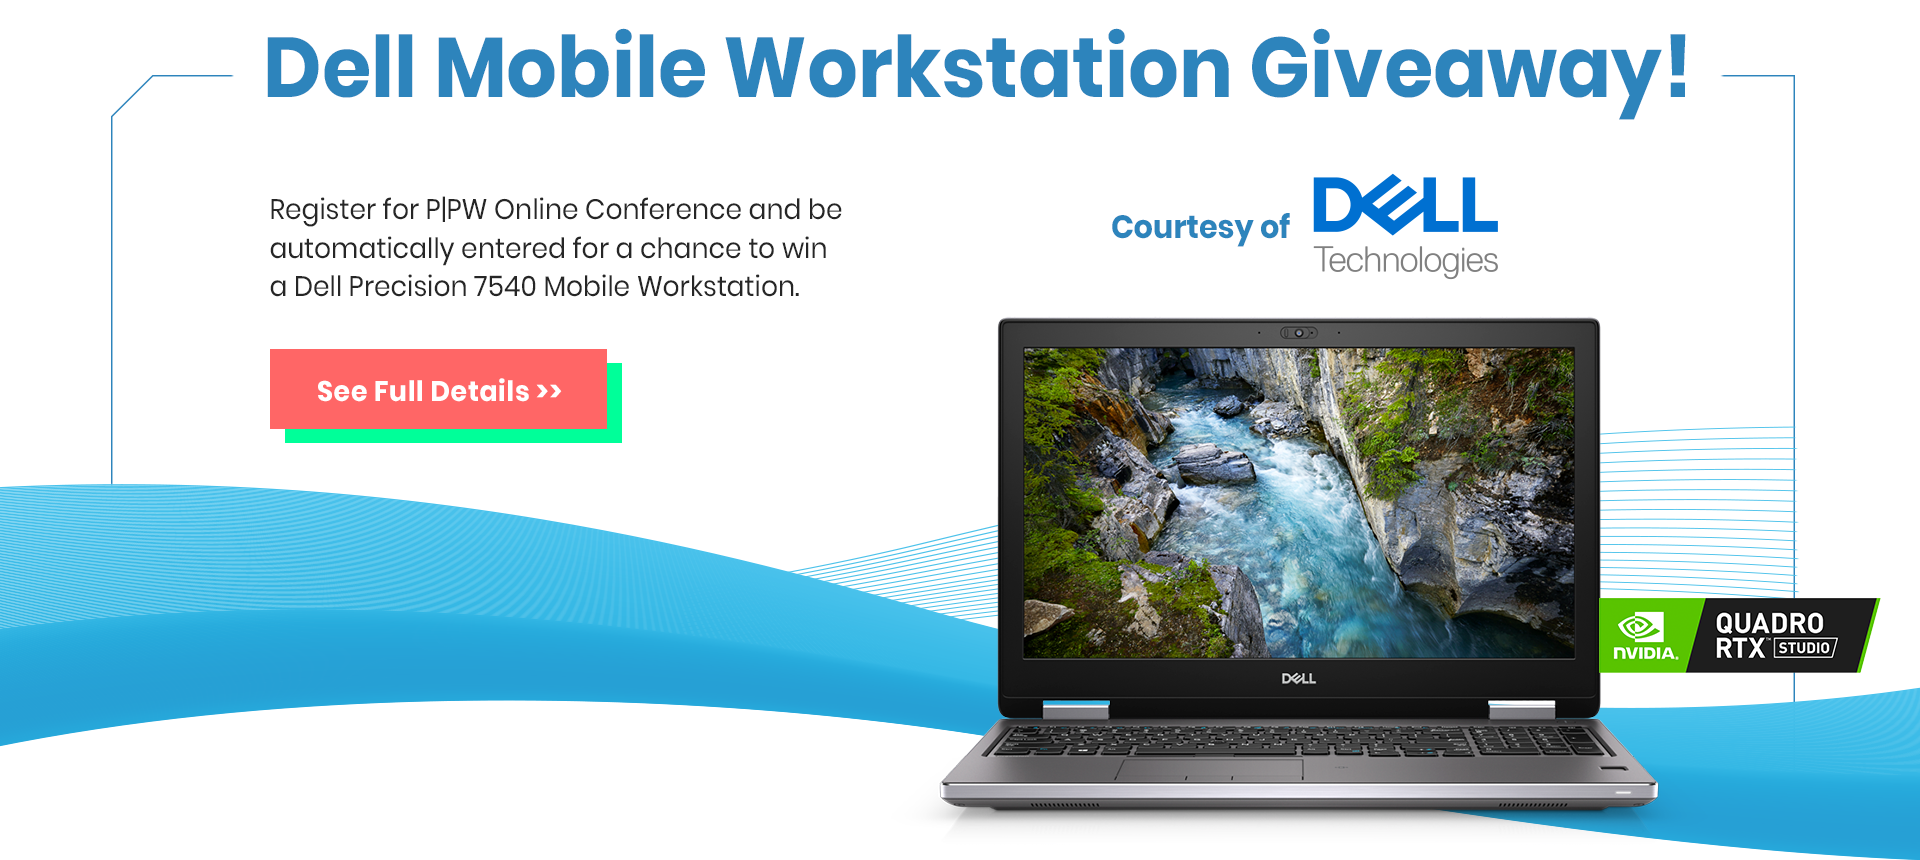 Image of Dell Mobile Workstation Giveaway